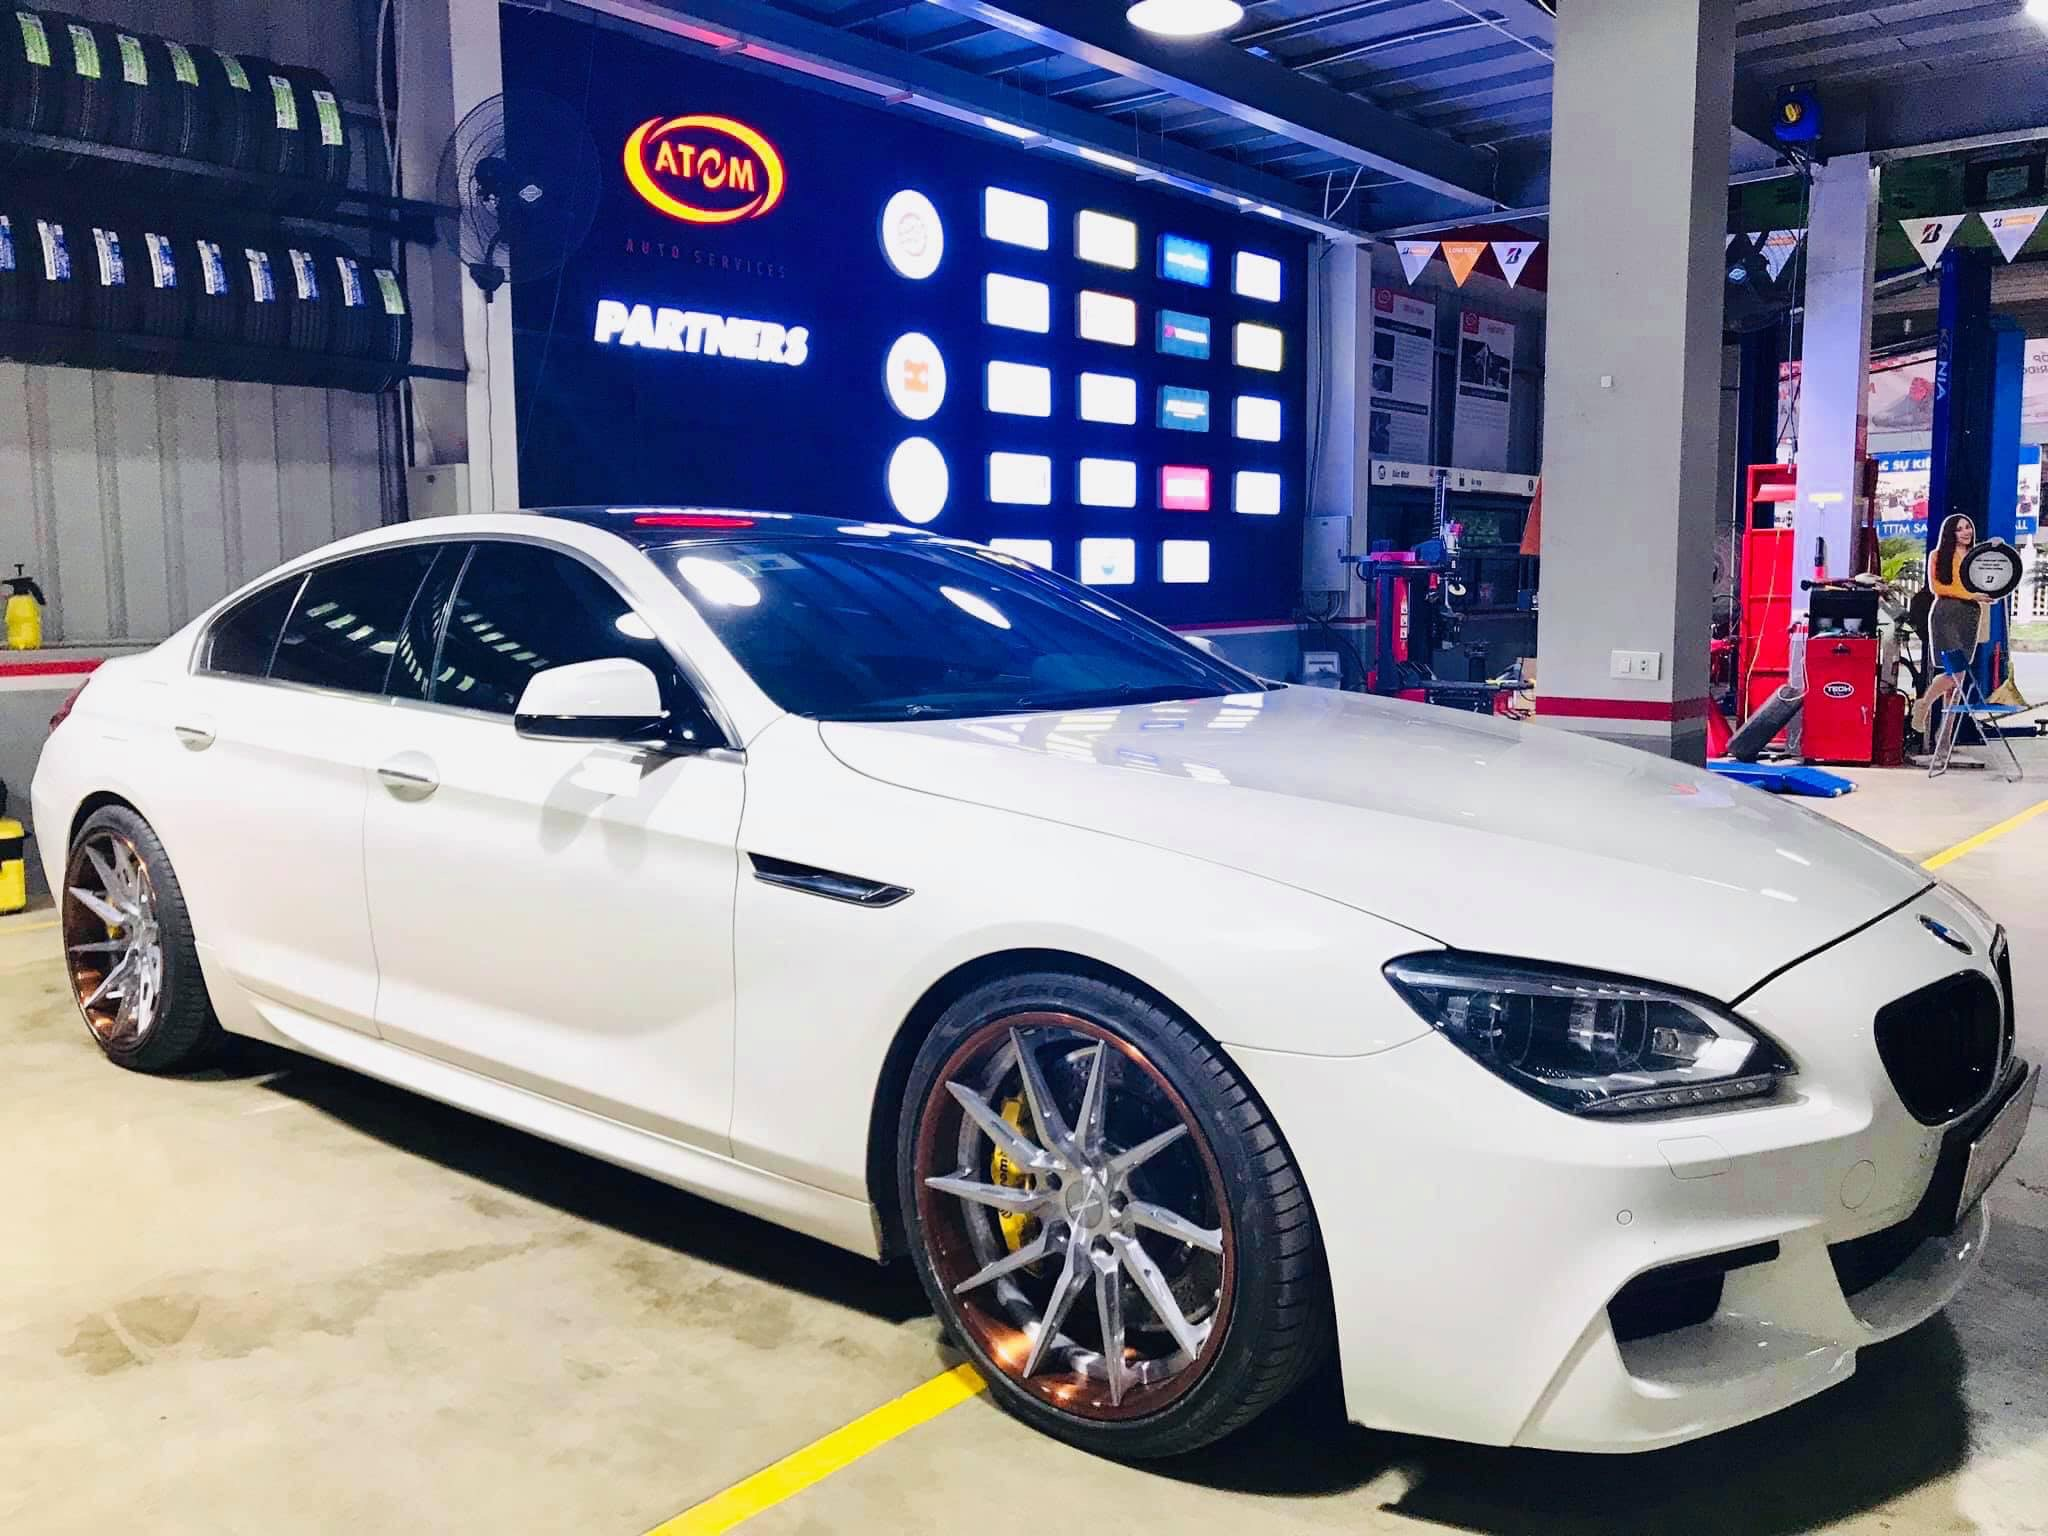 USA 305FORGED BMW 640i